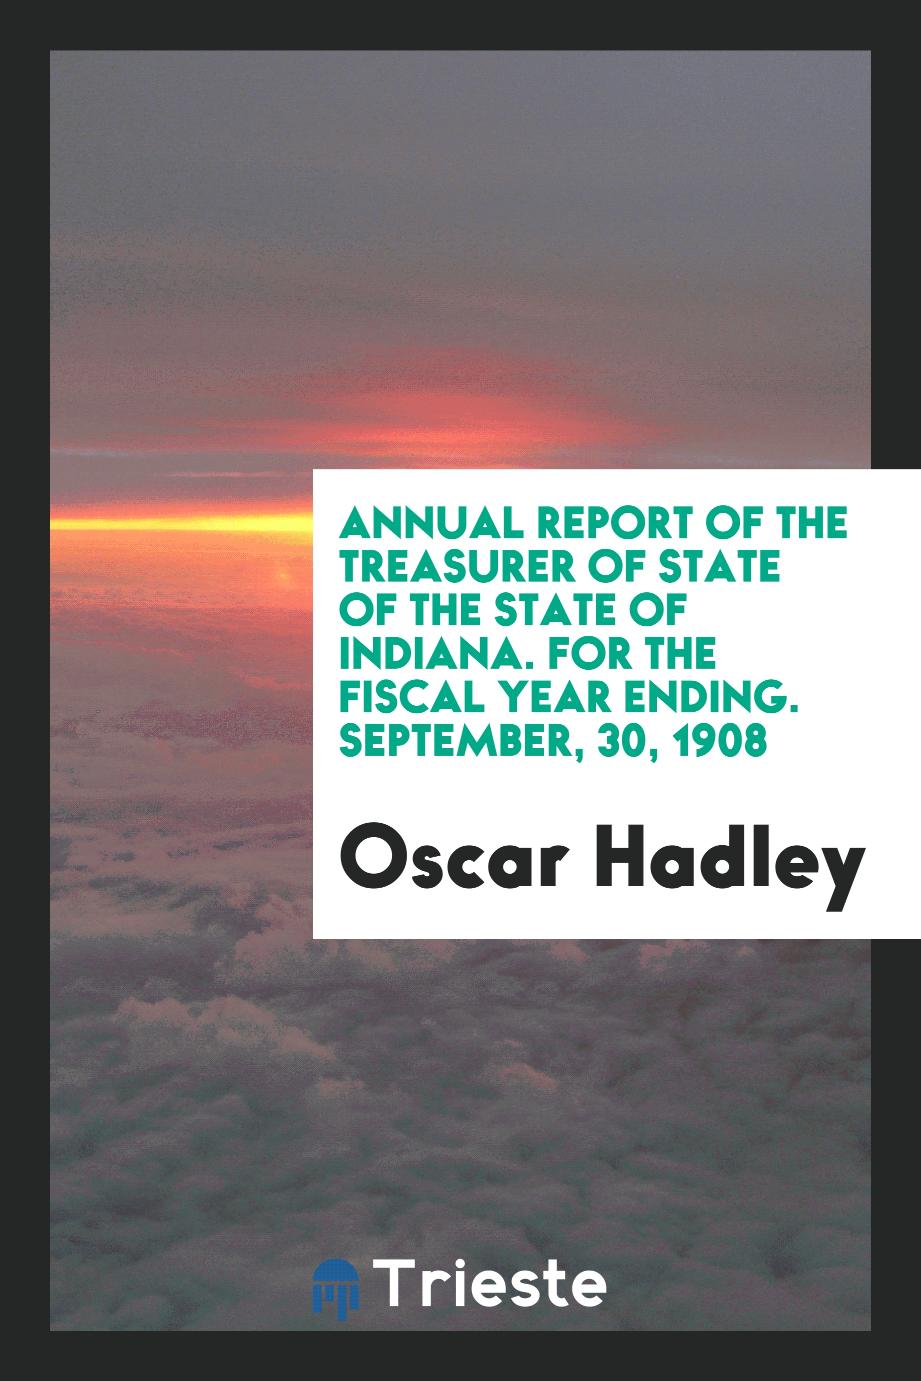 Annual report of the treasurer of state of the state of Indiana. For the fiscal year ending. September, 30, 1908